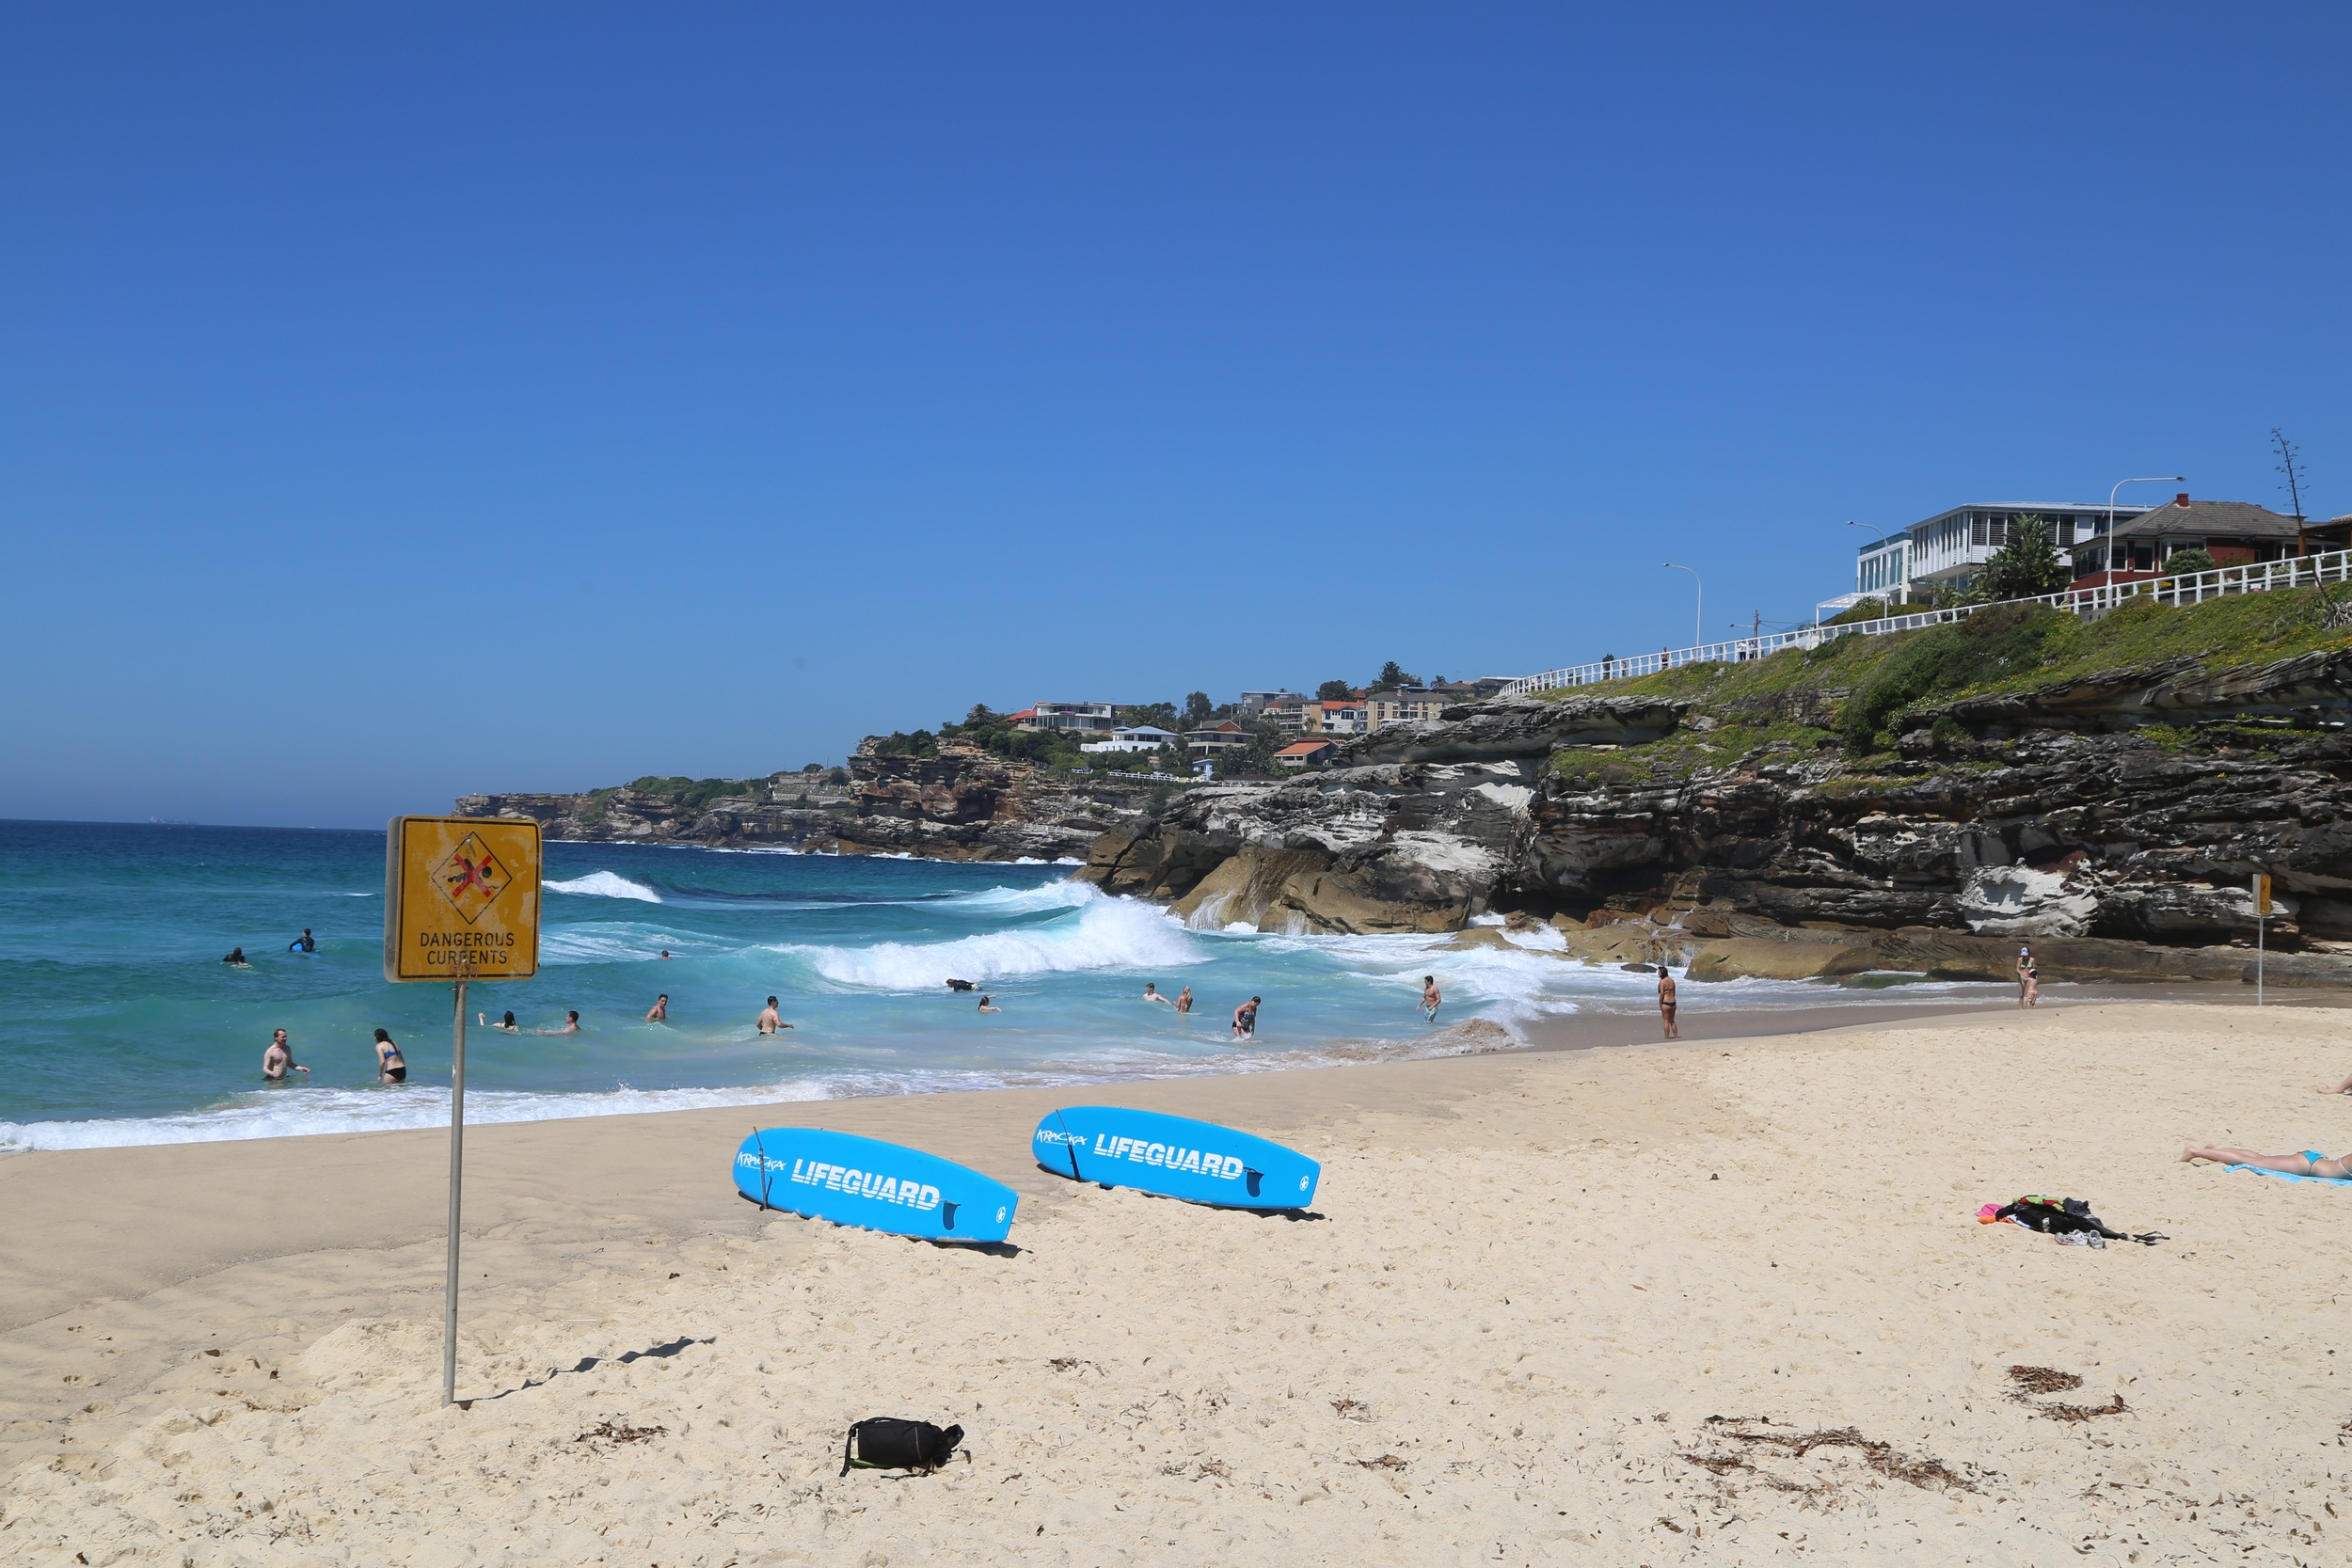 Tamarama - My favorite beach